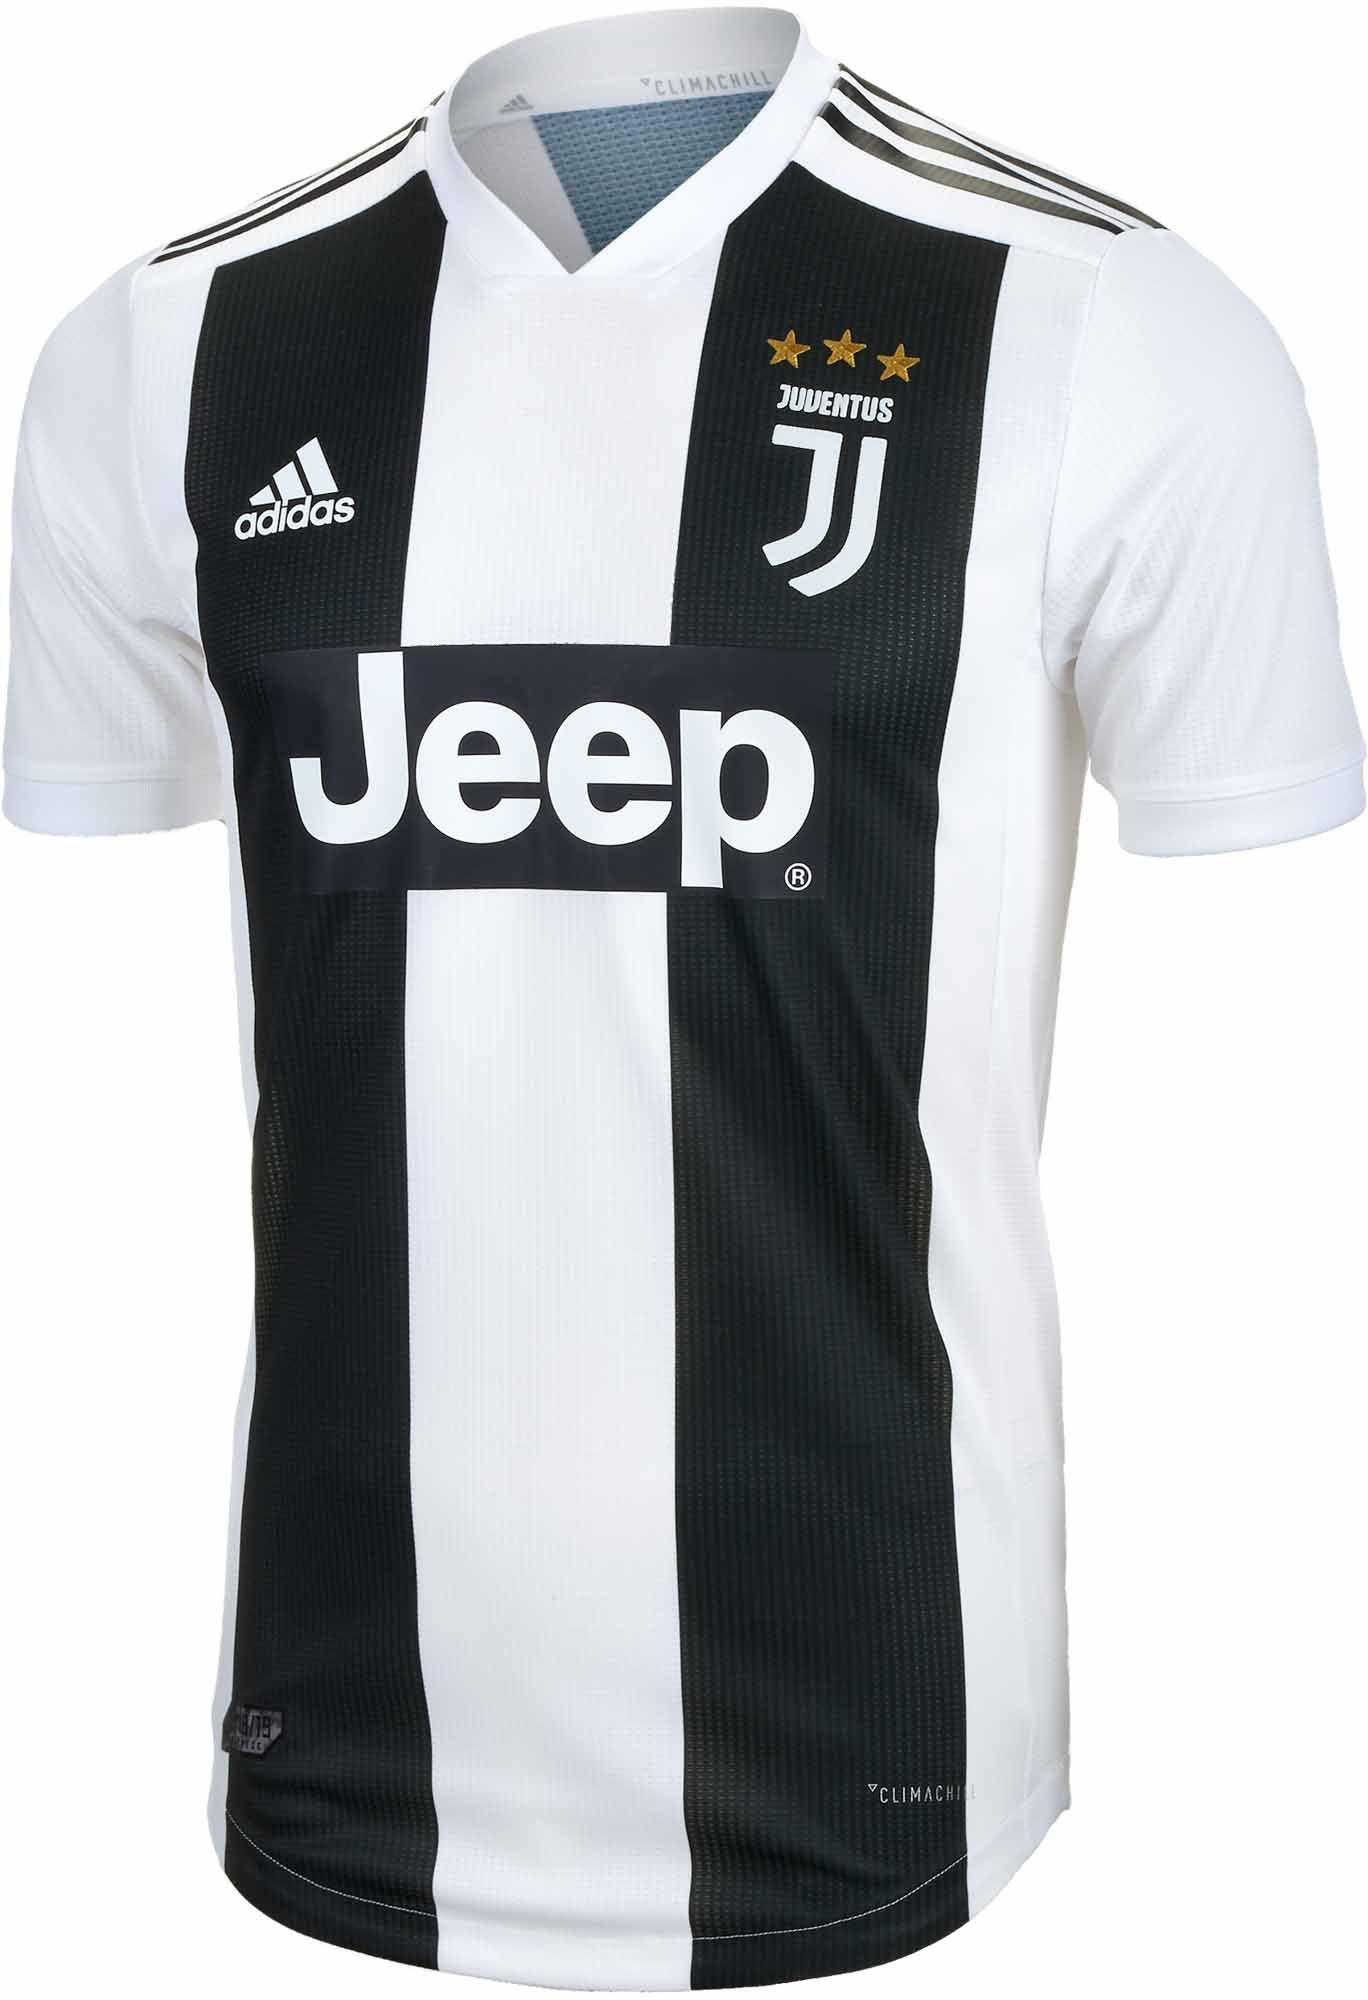 new product abb55 5ca7a adidas Juventus Home Authentic Jersey 2018-19 | Soccer ...